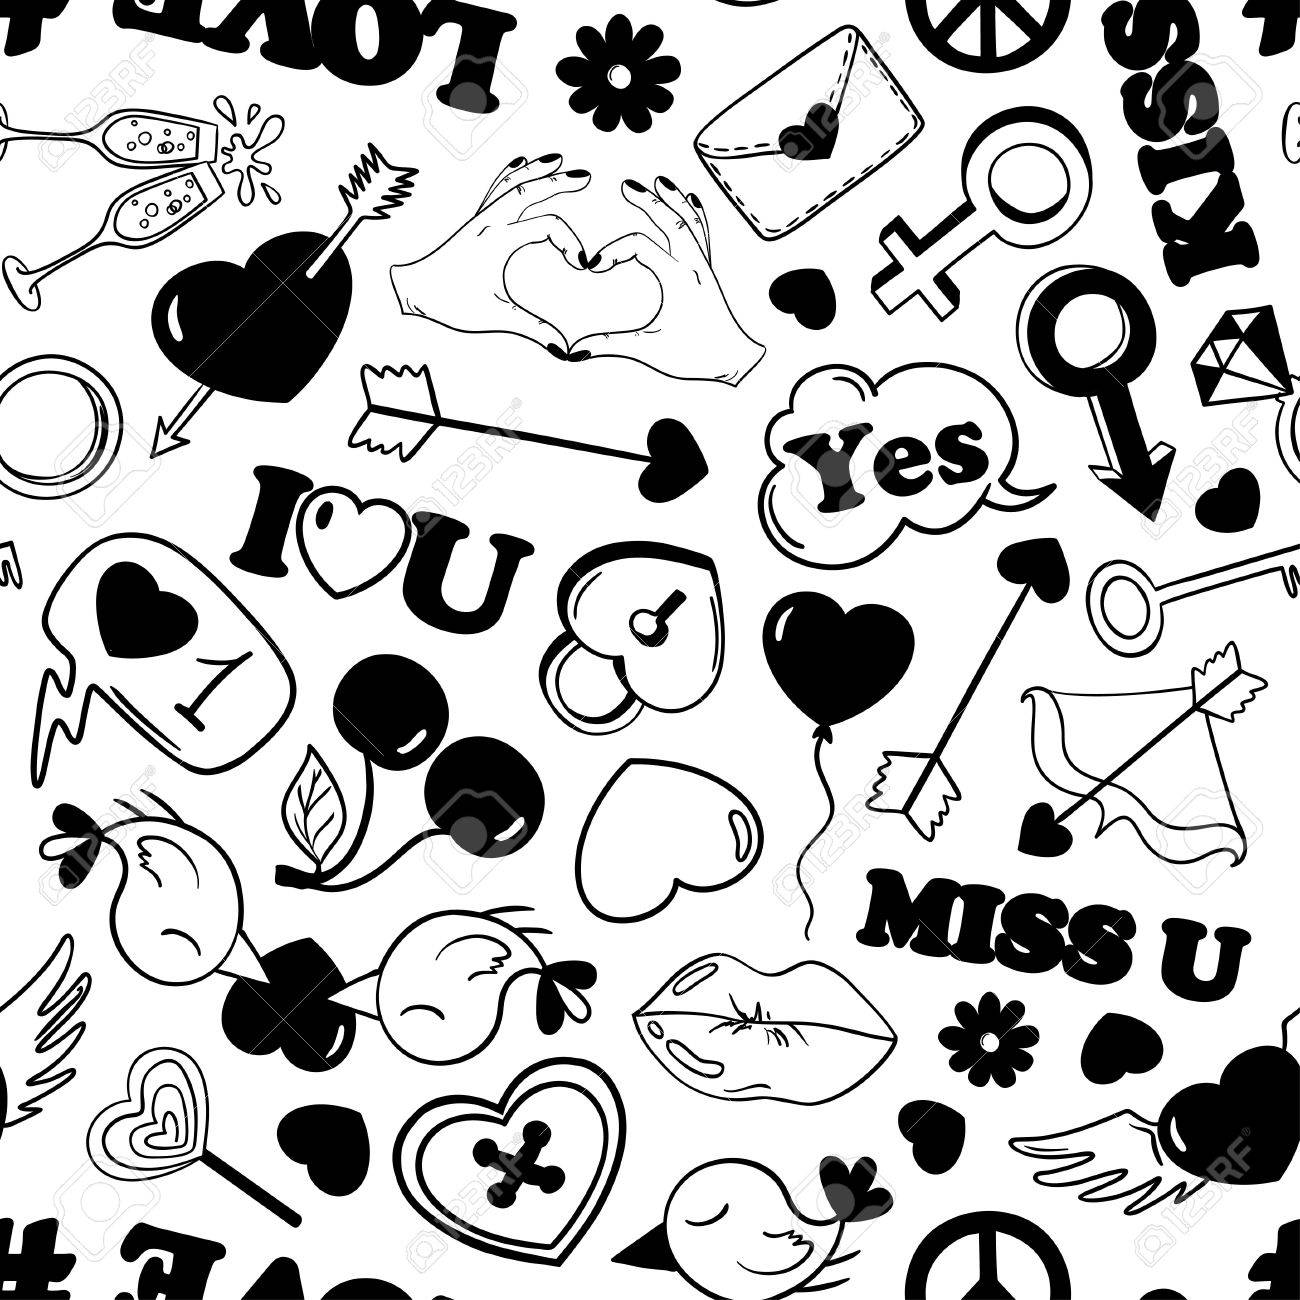 Black and white fun pattern of love stickers emoji pins or patches in cartoon